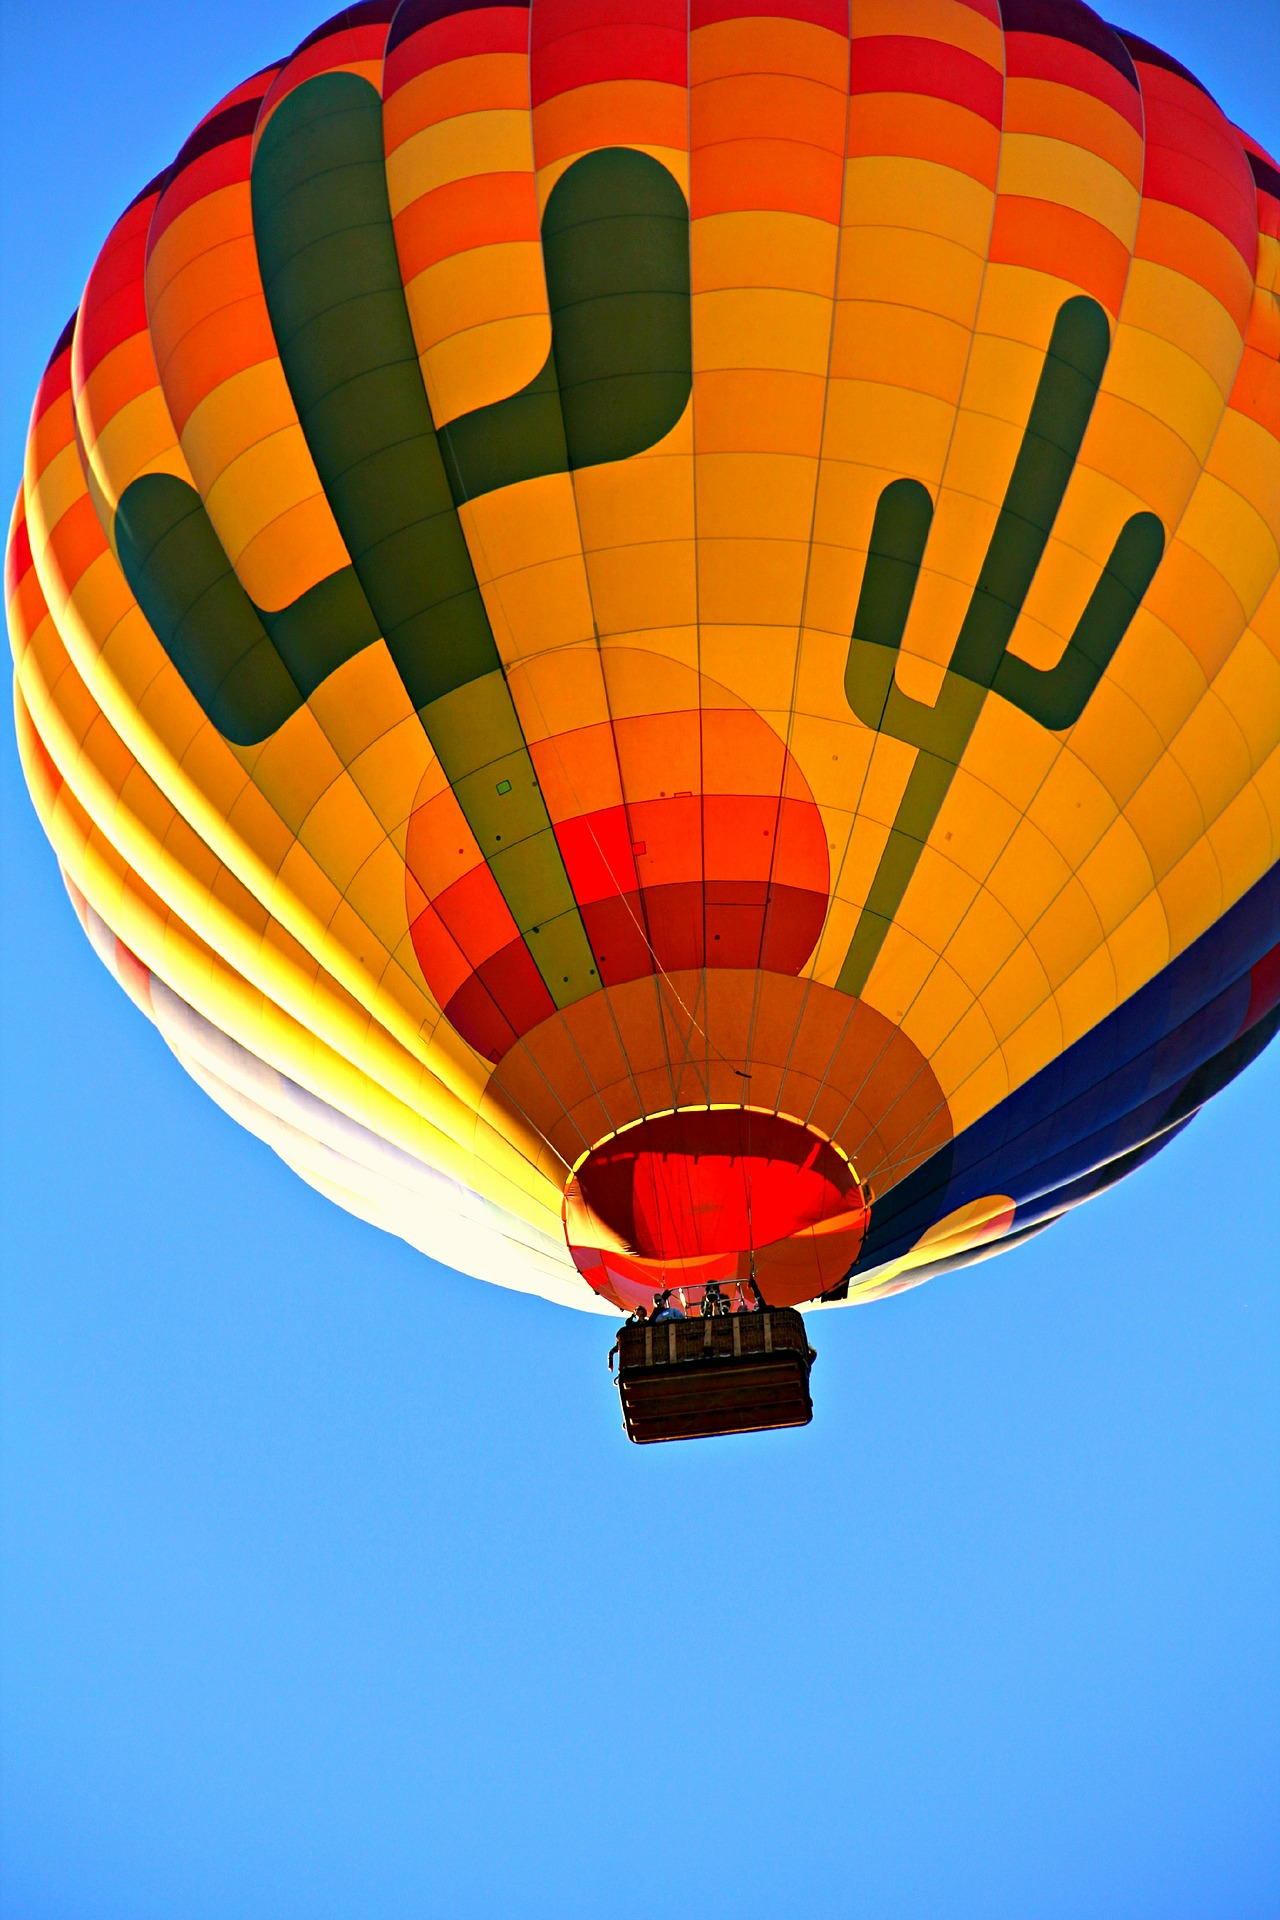 hot-air-balloon-521542_1920